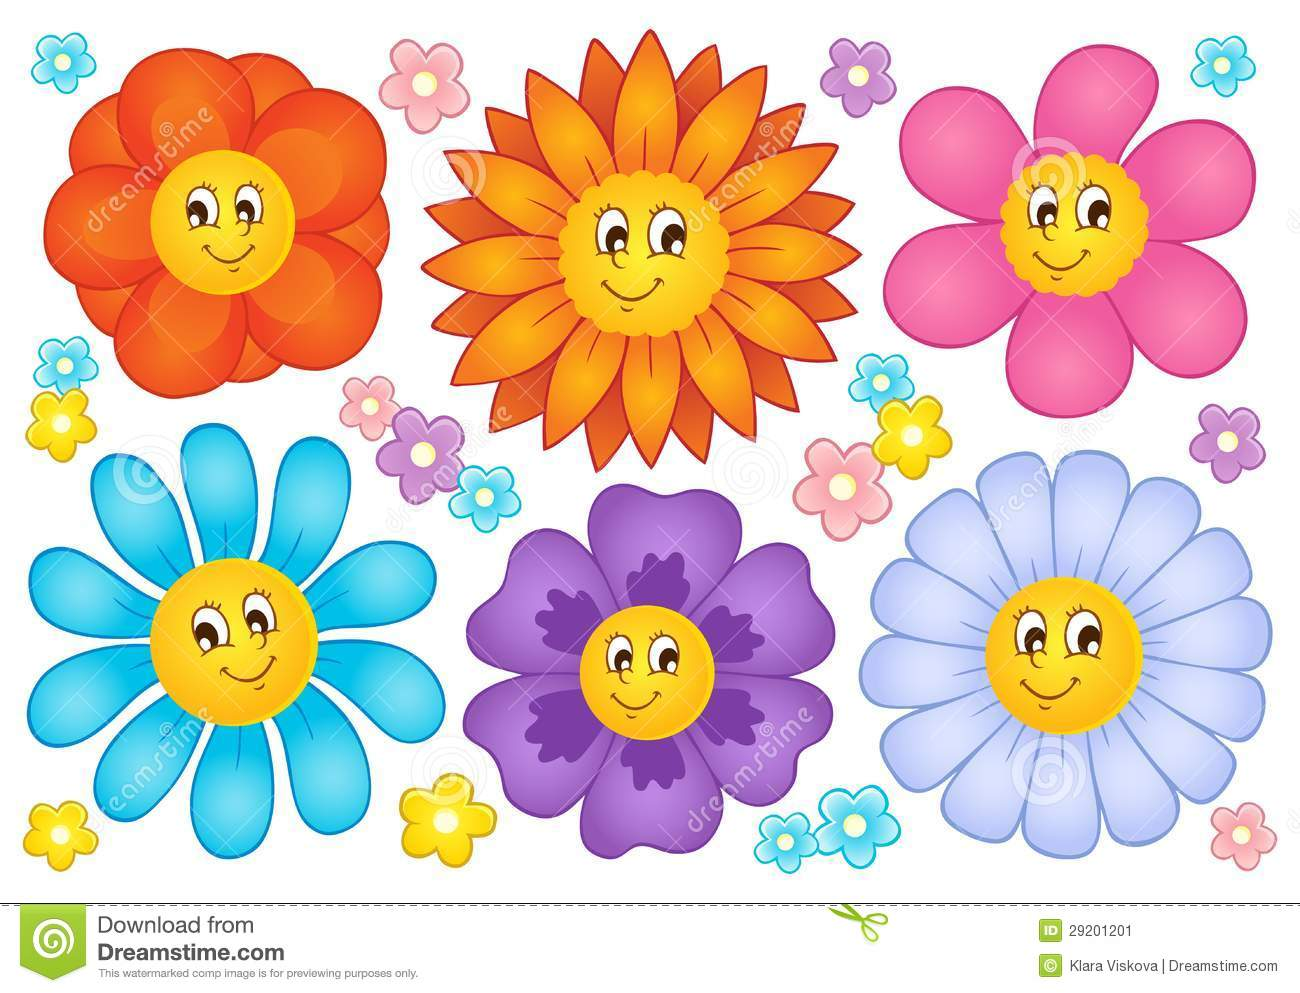 Cartoon flowers clipart 4 » Clipart Station.